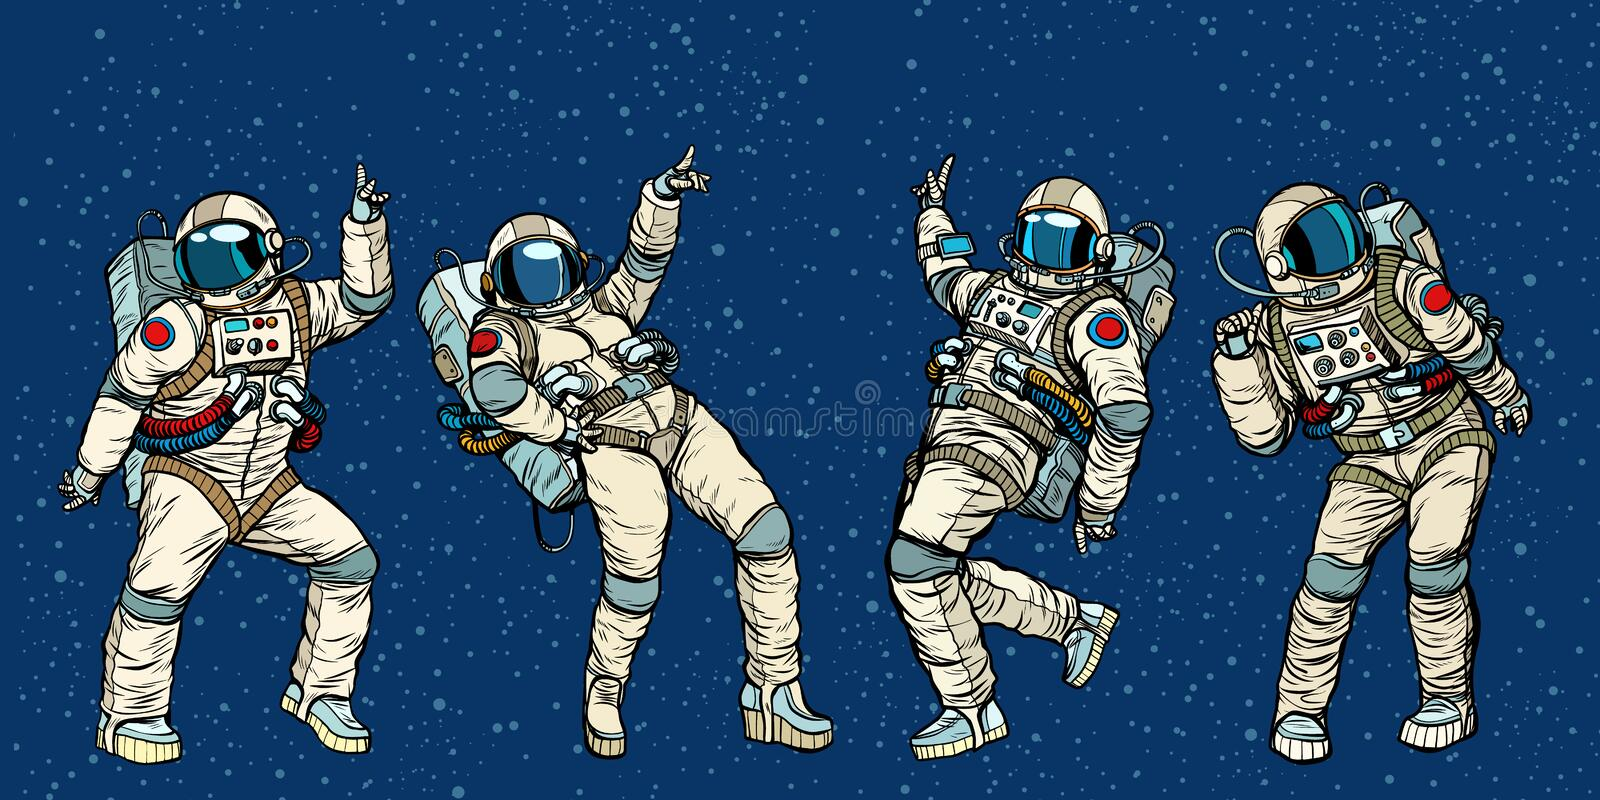 Disco party astronauts dancing men and women royalty free illustration